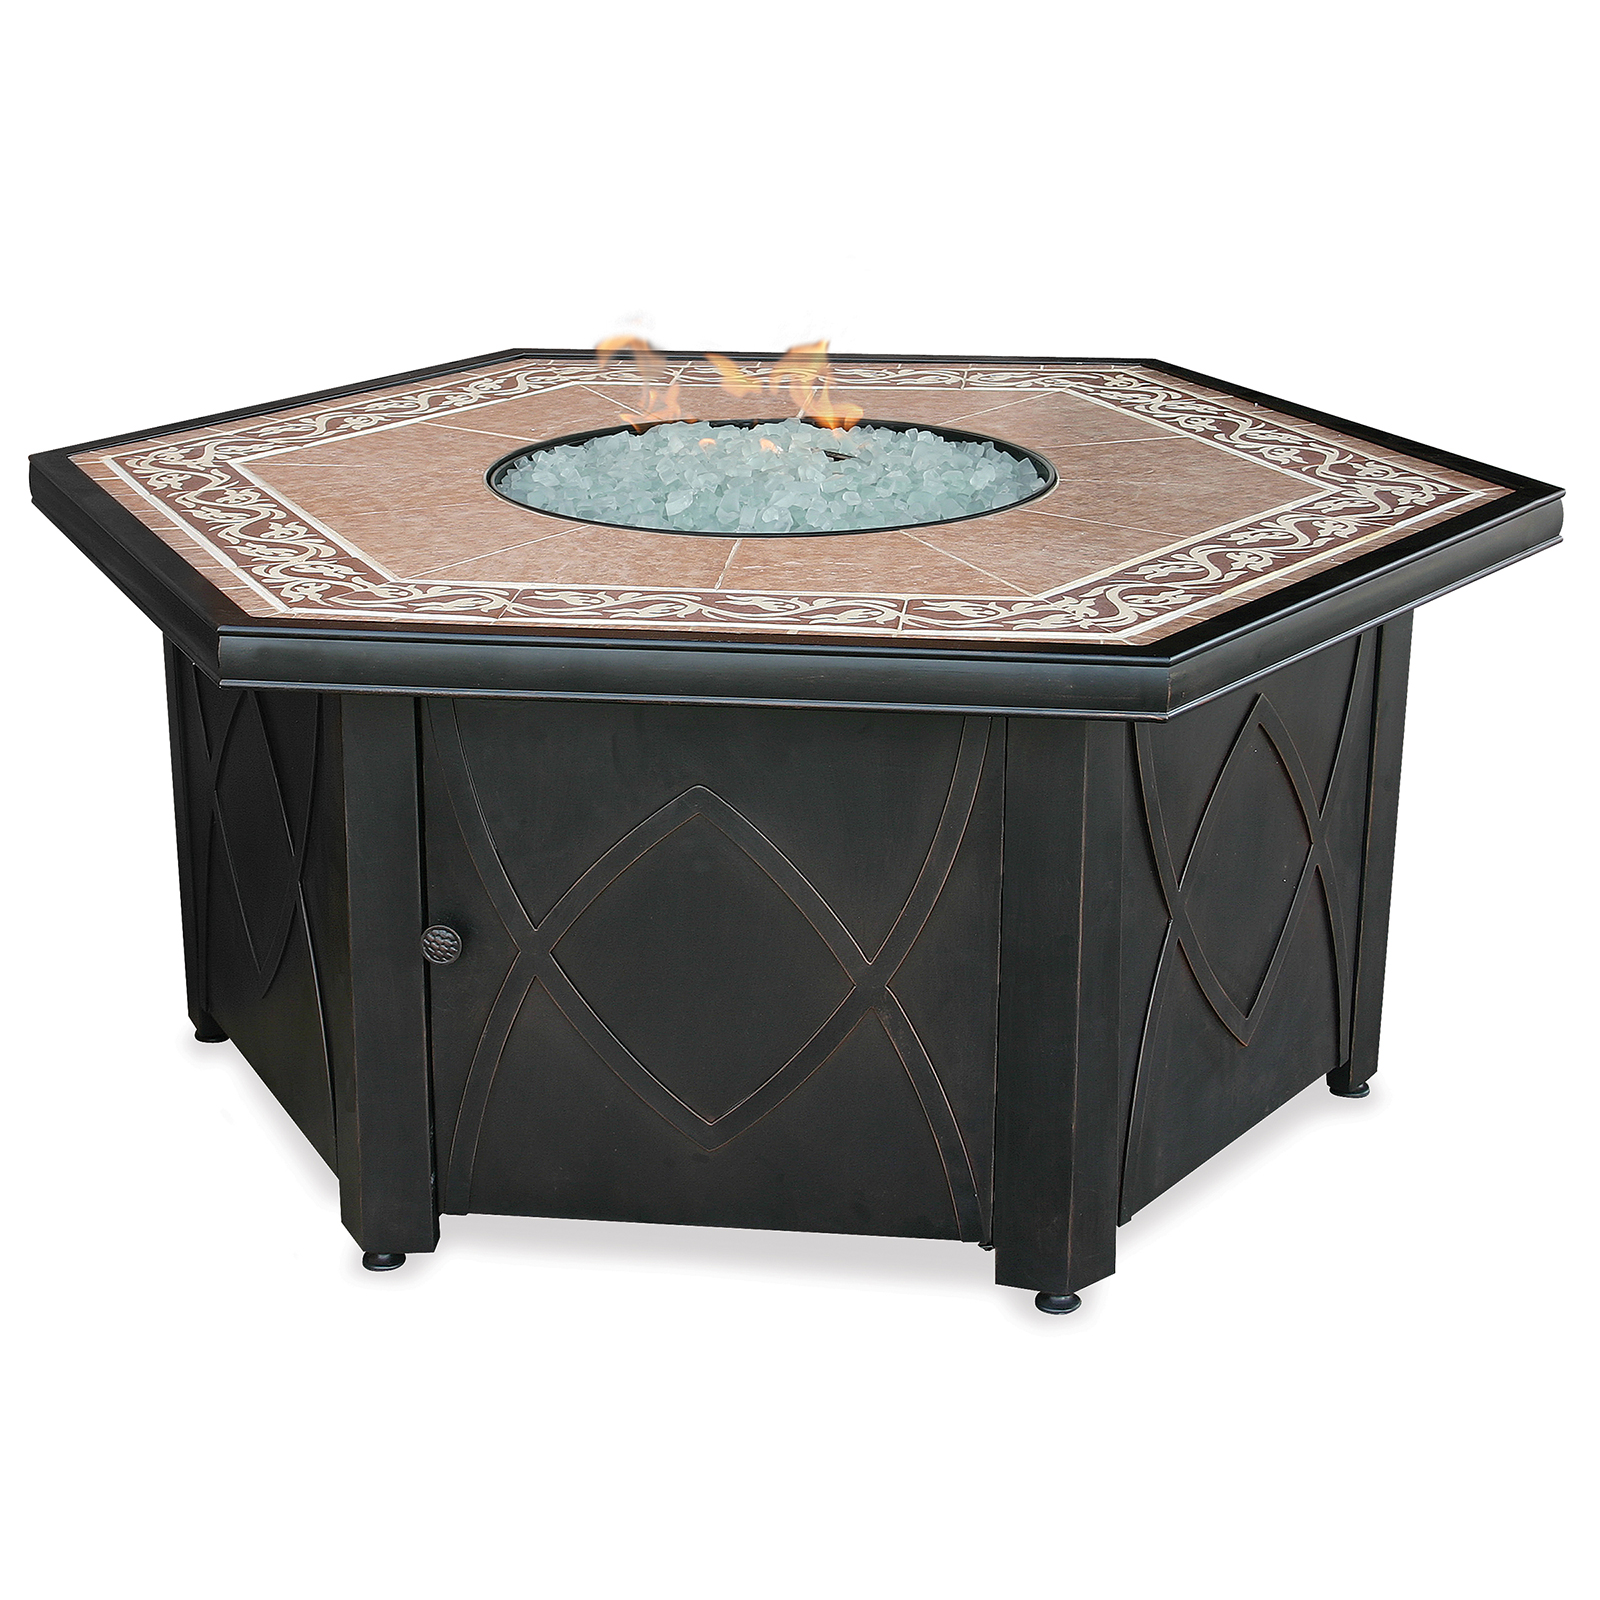 Endless Summer Outdoor Fire Table Lp Gas With Decorative